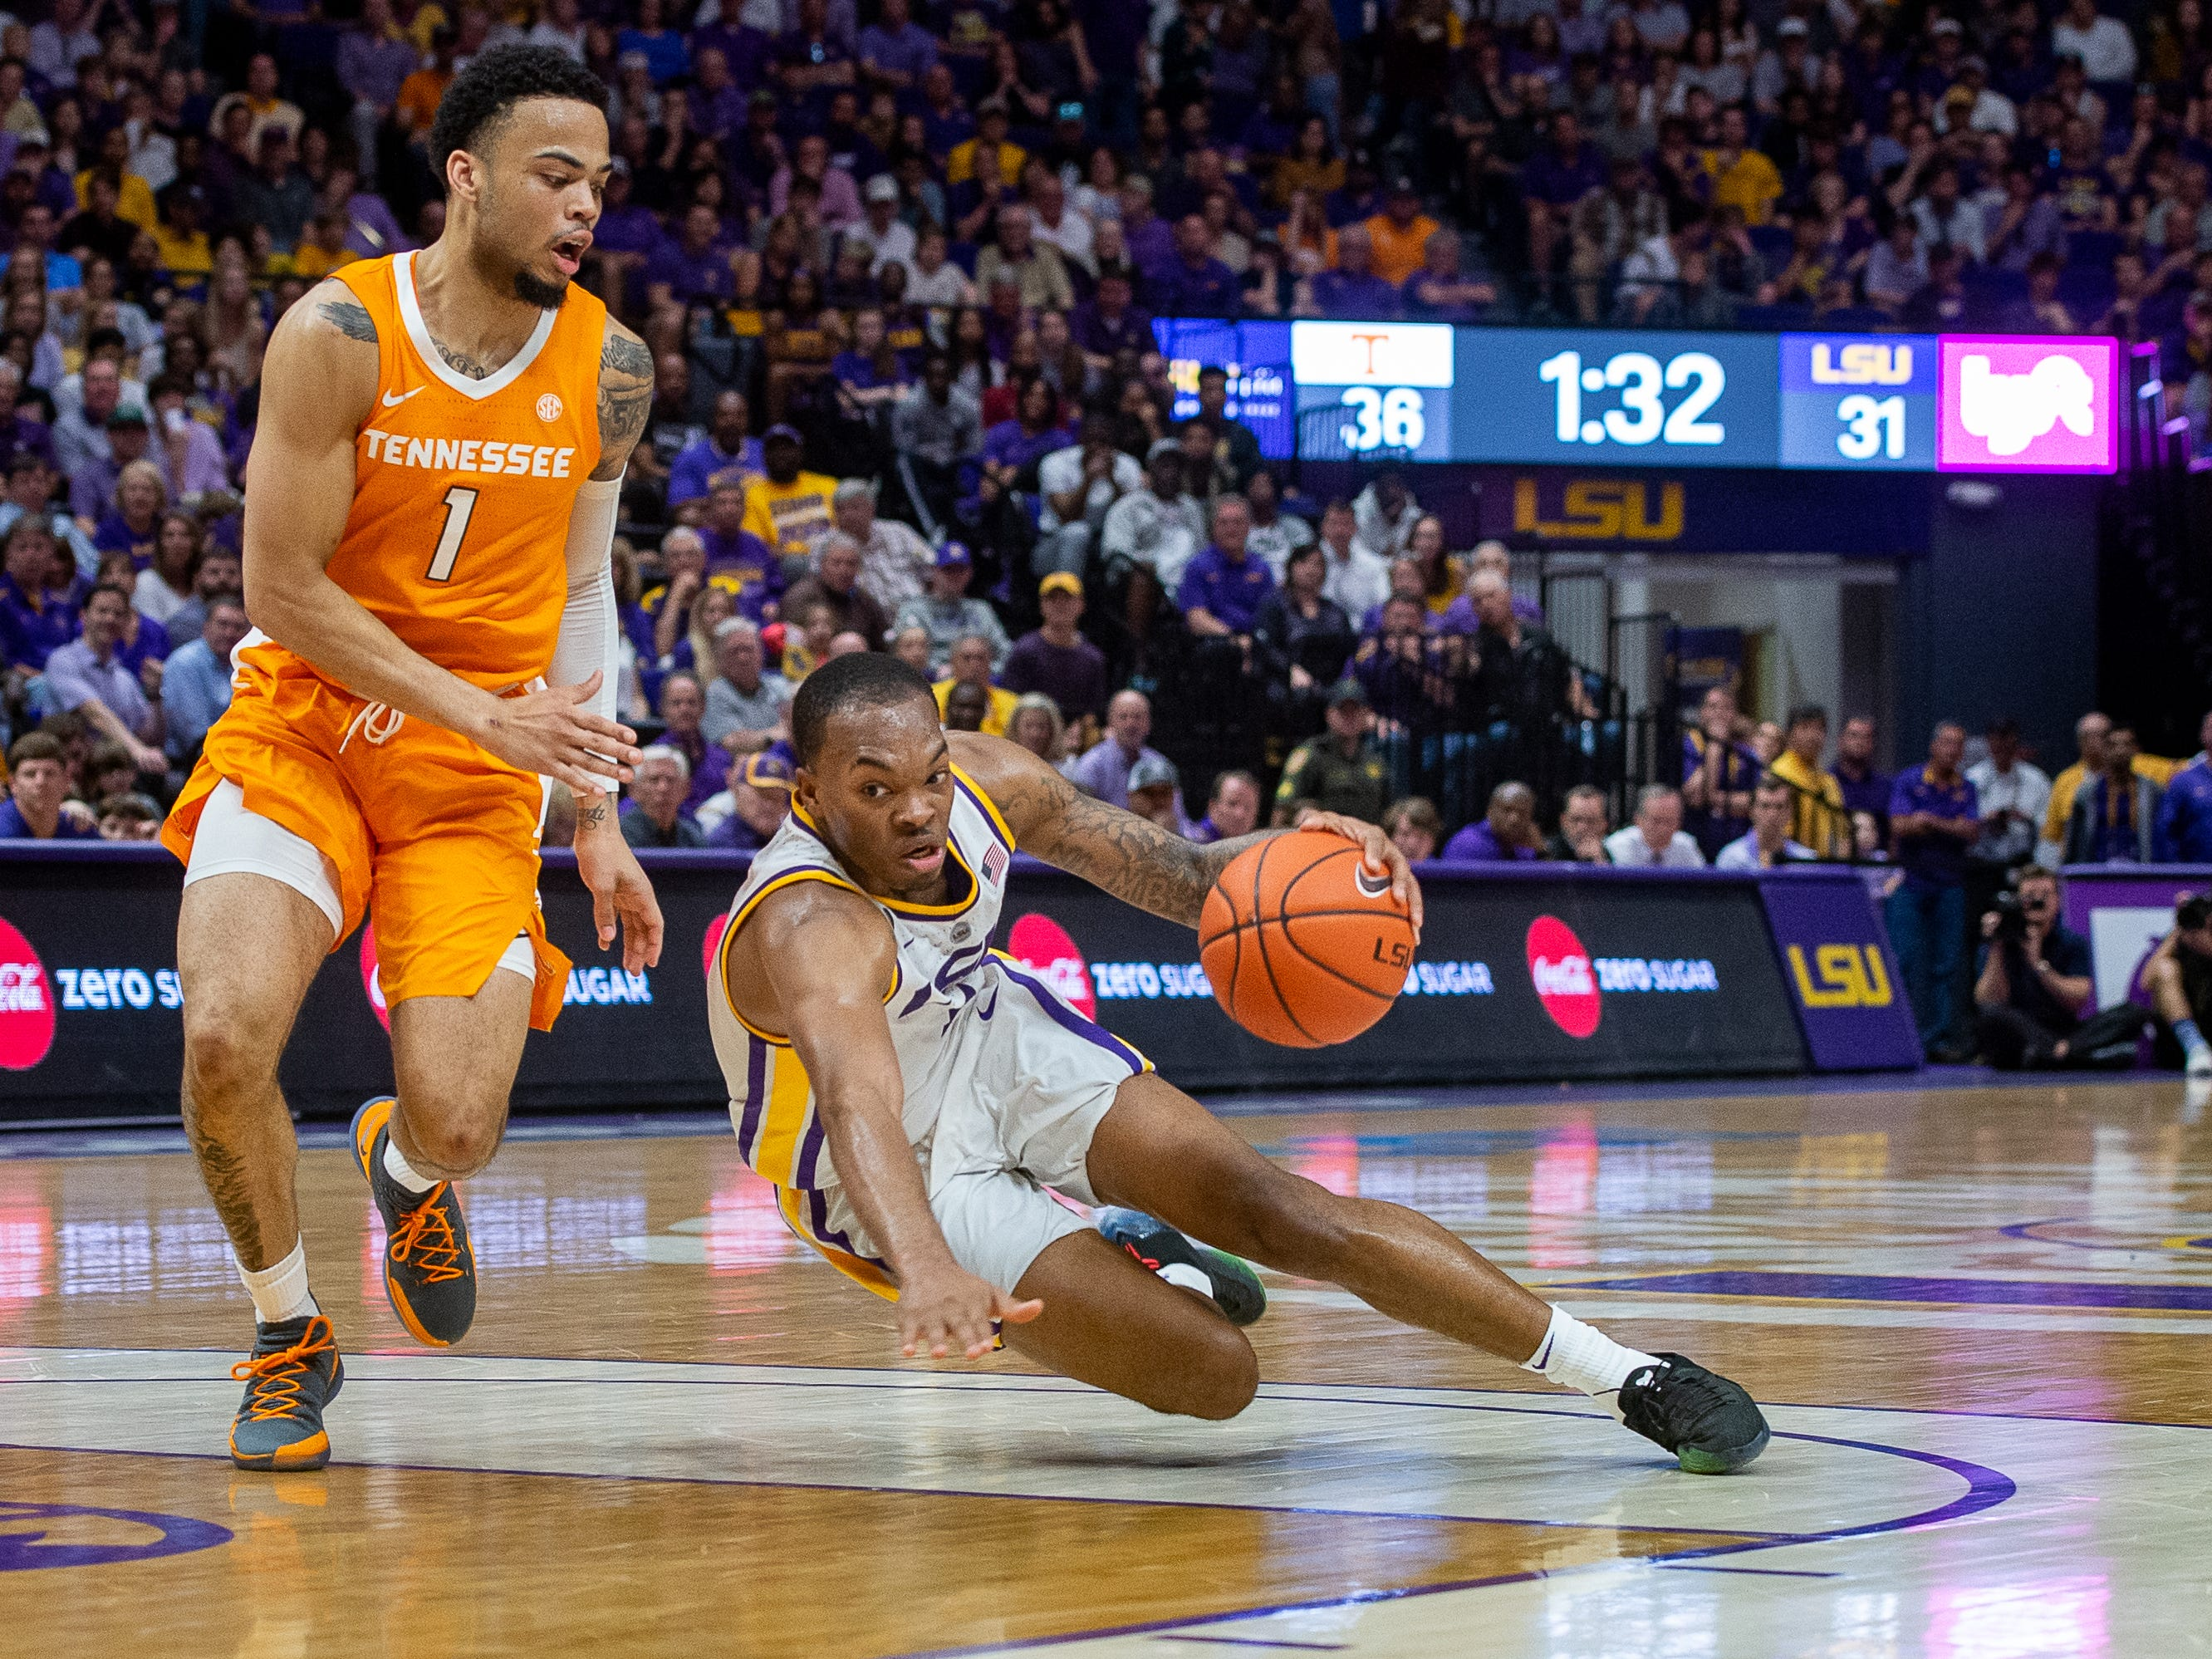 Javonte Smart falls while driving to the basket and Lamonte' Turner leaps over him as the LSU Fighting Tigers take on the Tennessee Volunteers at the Pete Marovich Assembly Center. Saturday, Feb. 23, 2019.